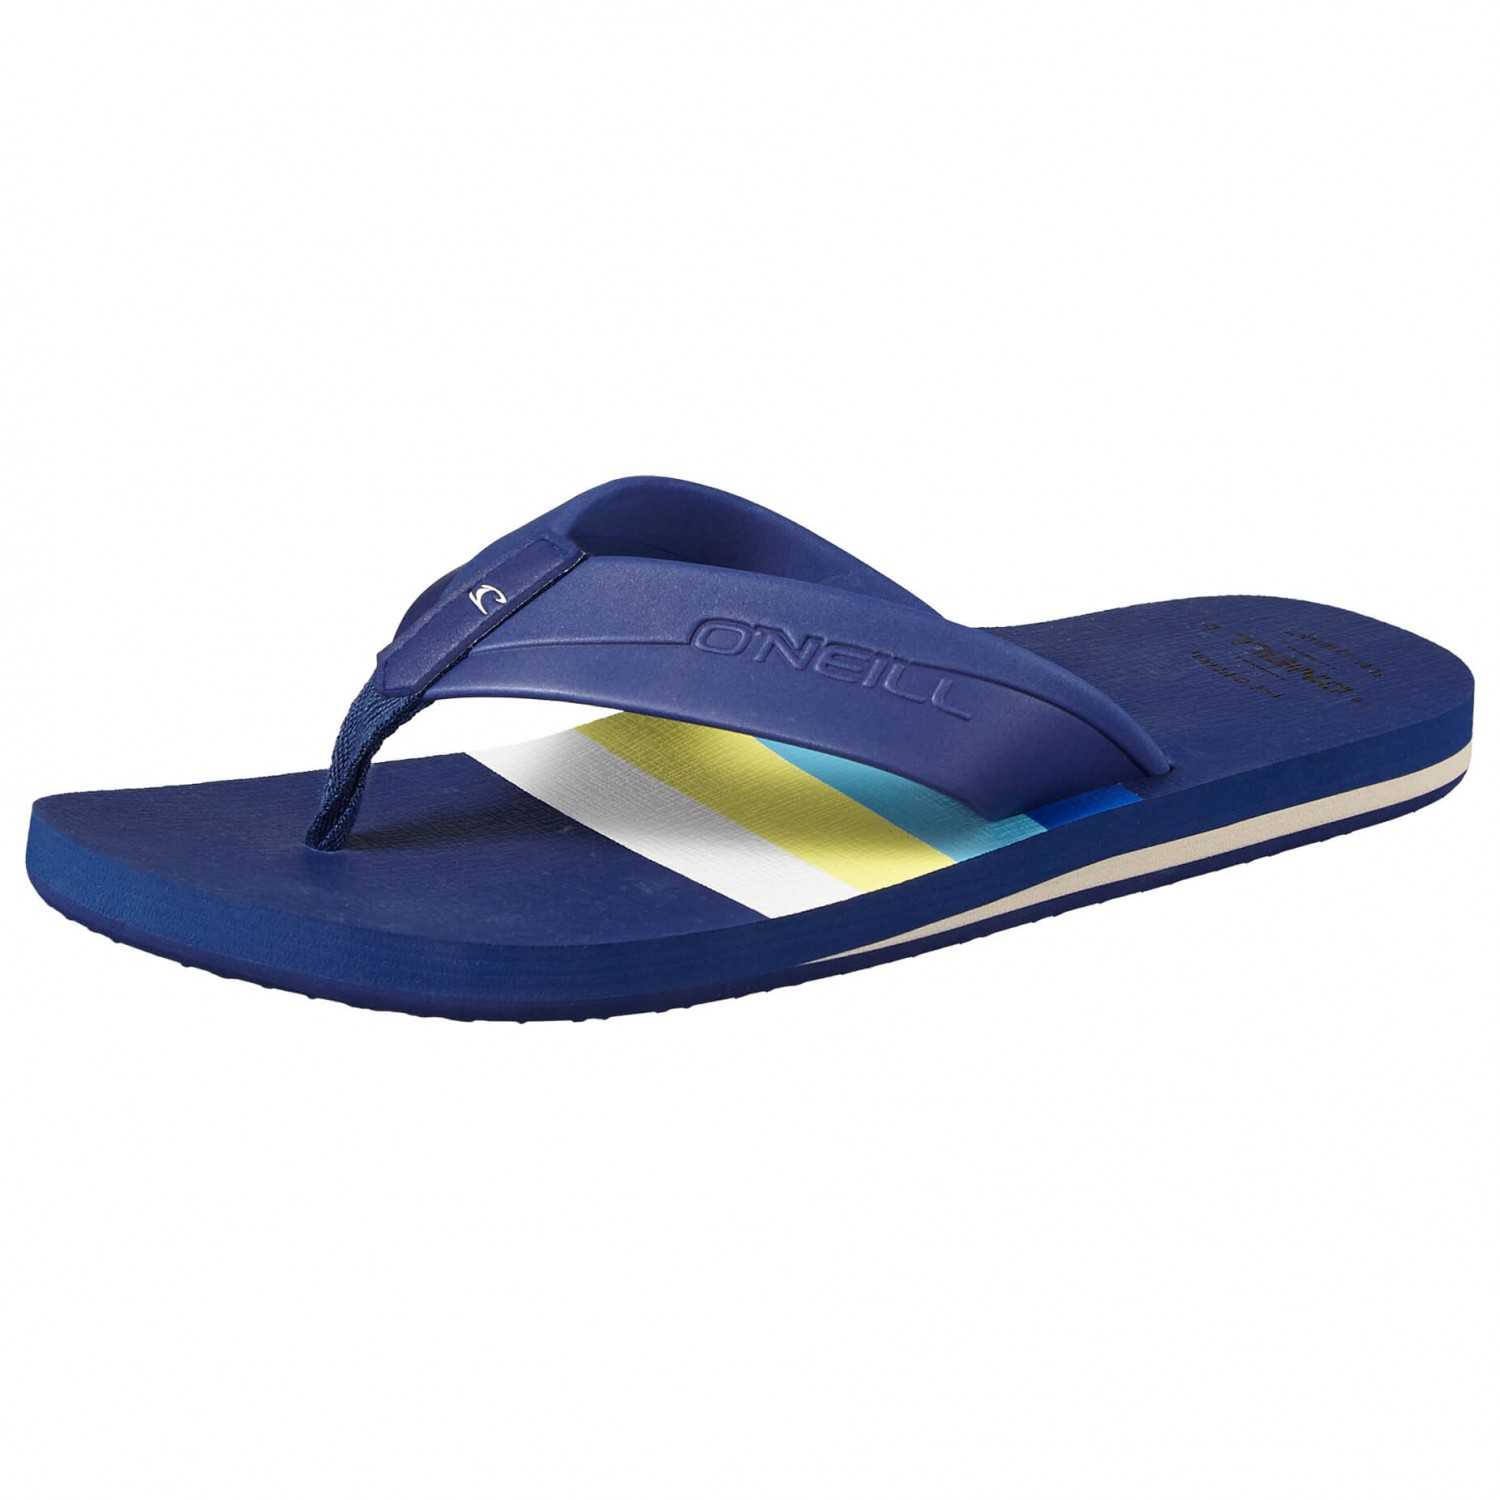 O'Neill - Imprint Pattern Sandals - Sandalen Blue All Over Print With Red